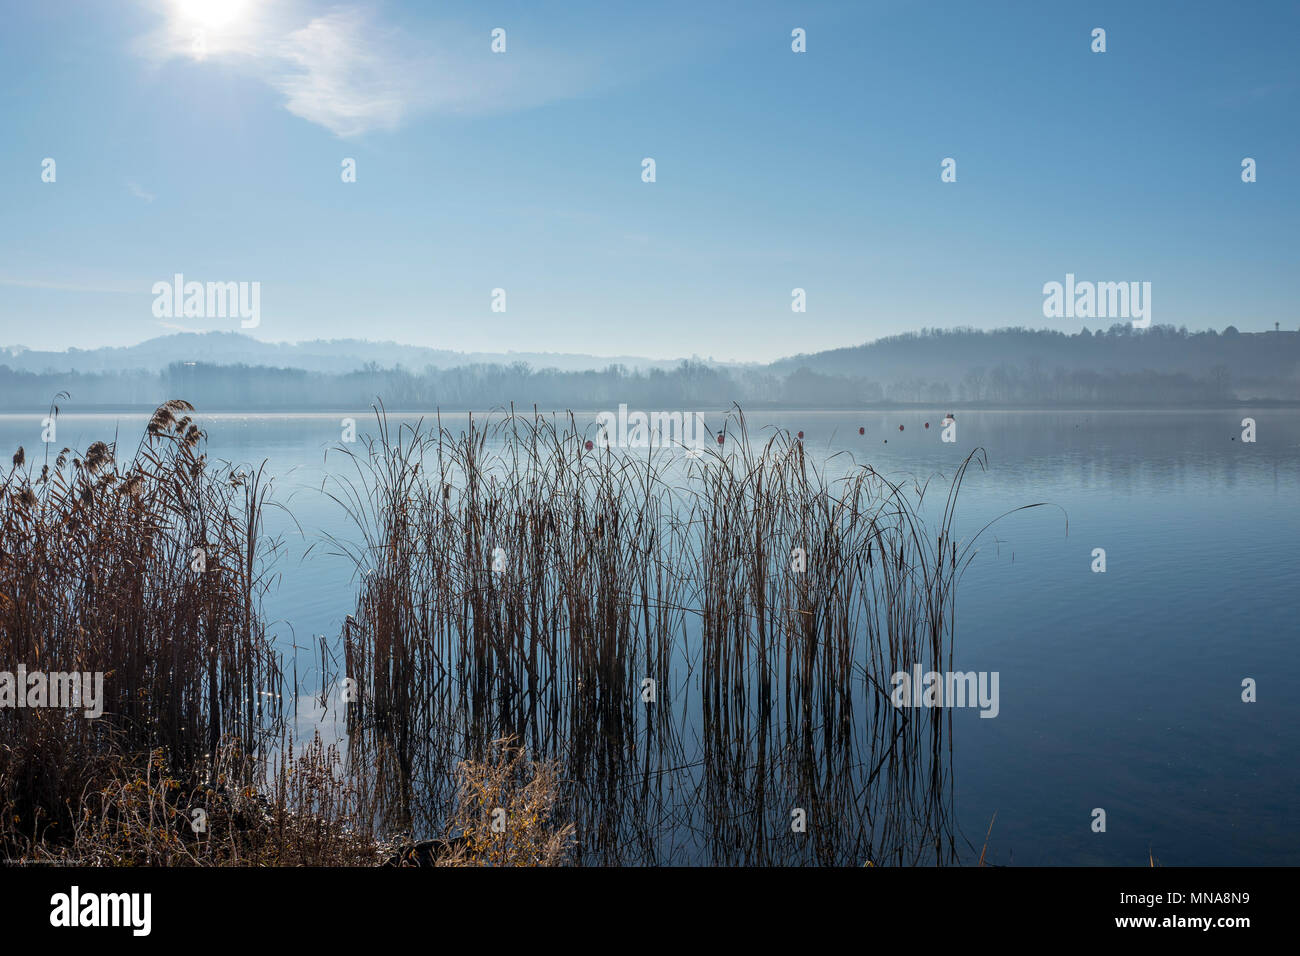 Varese. Lombardy. ITALY. View, across the lake and Rowing Course, at the Varese Rowing Club. [Canottieri Varese] Lake Varese. © Peter SPURRIER,  Atmospheric Conditions - Stock Image